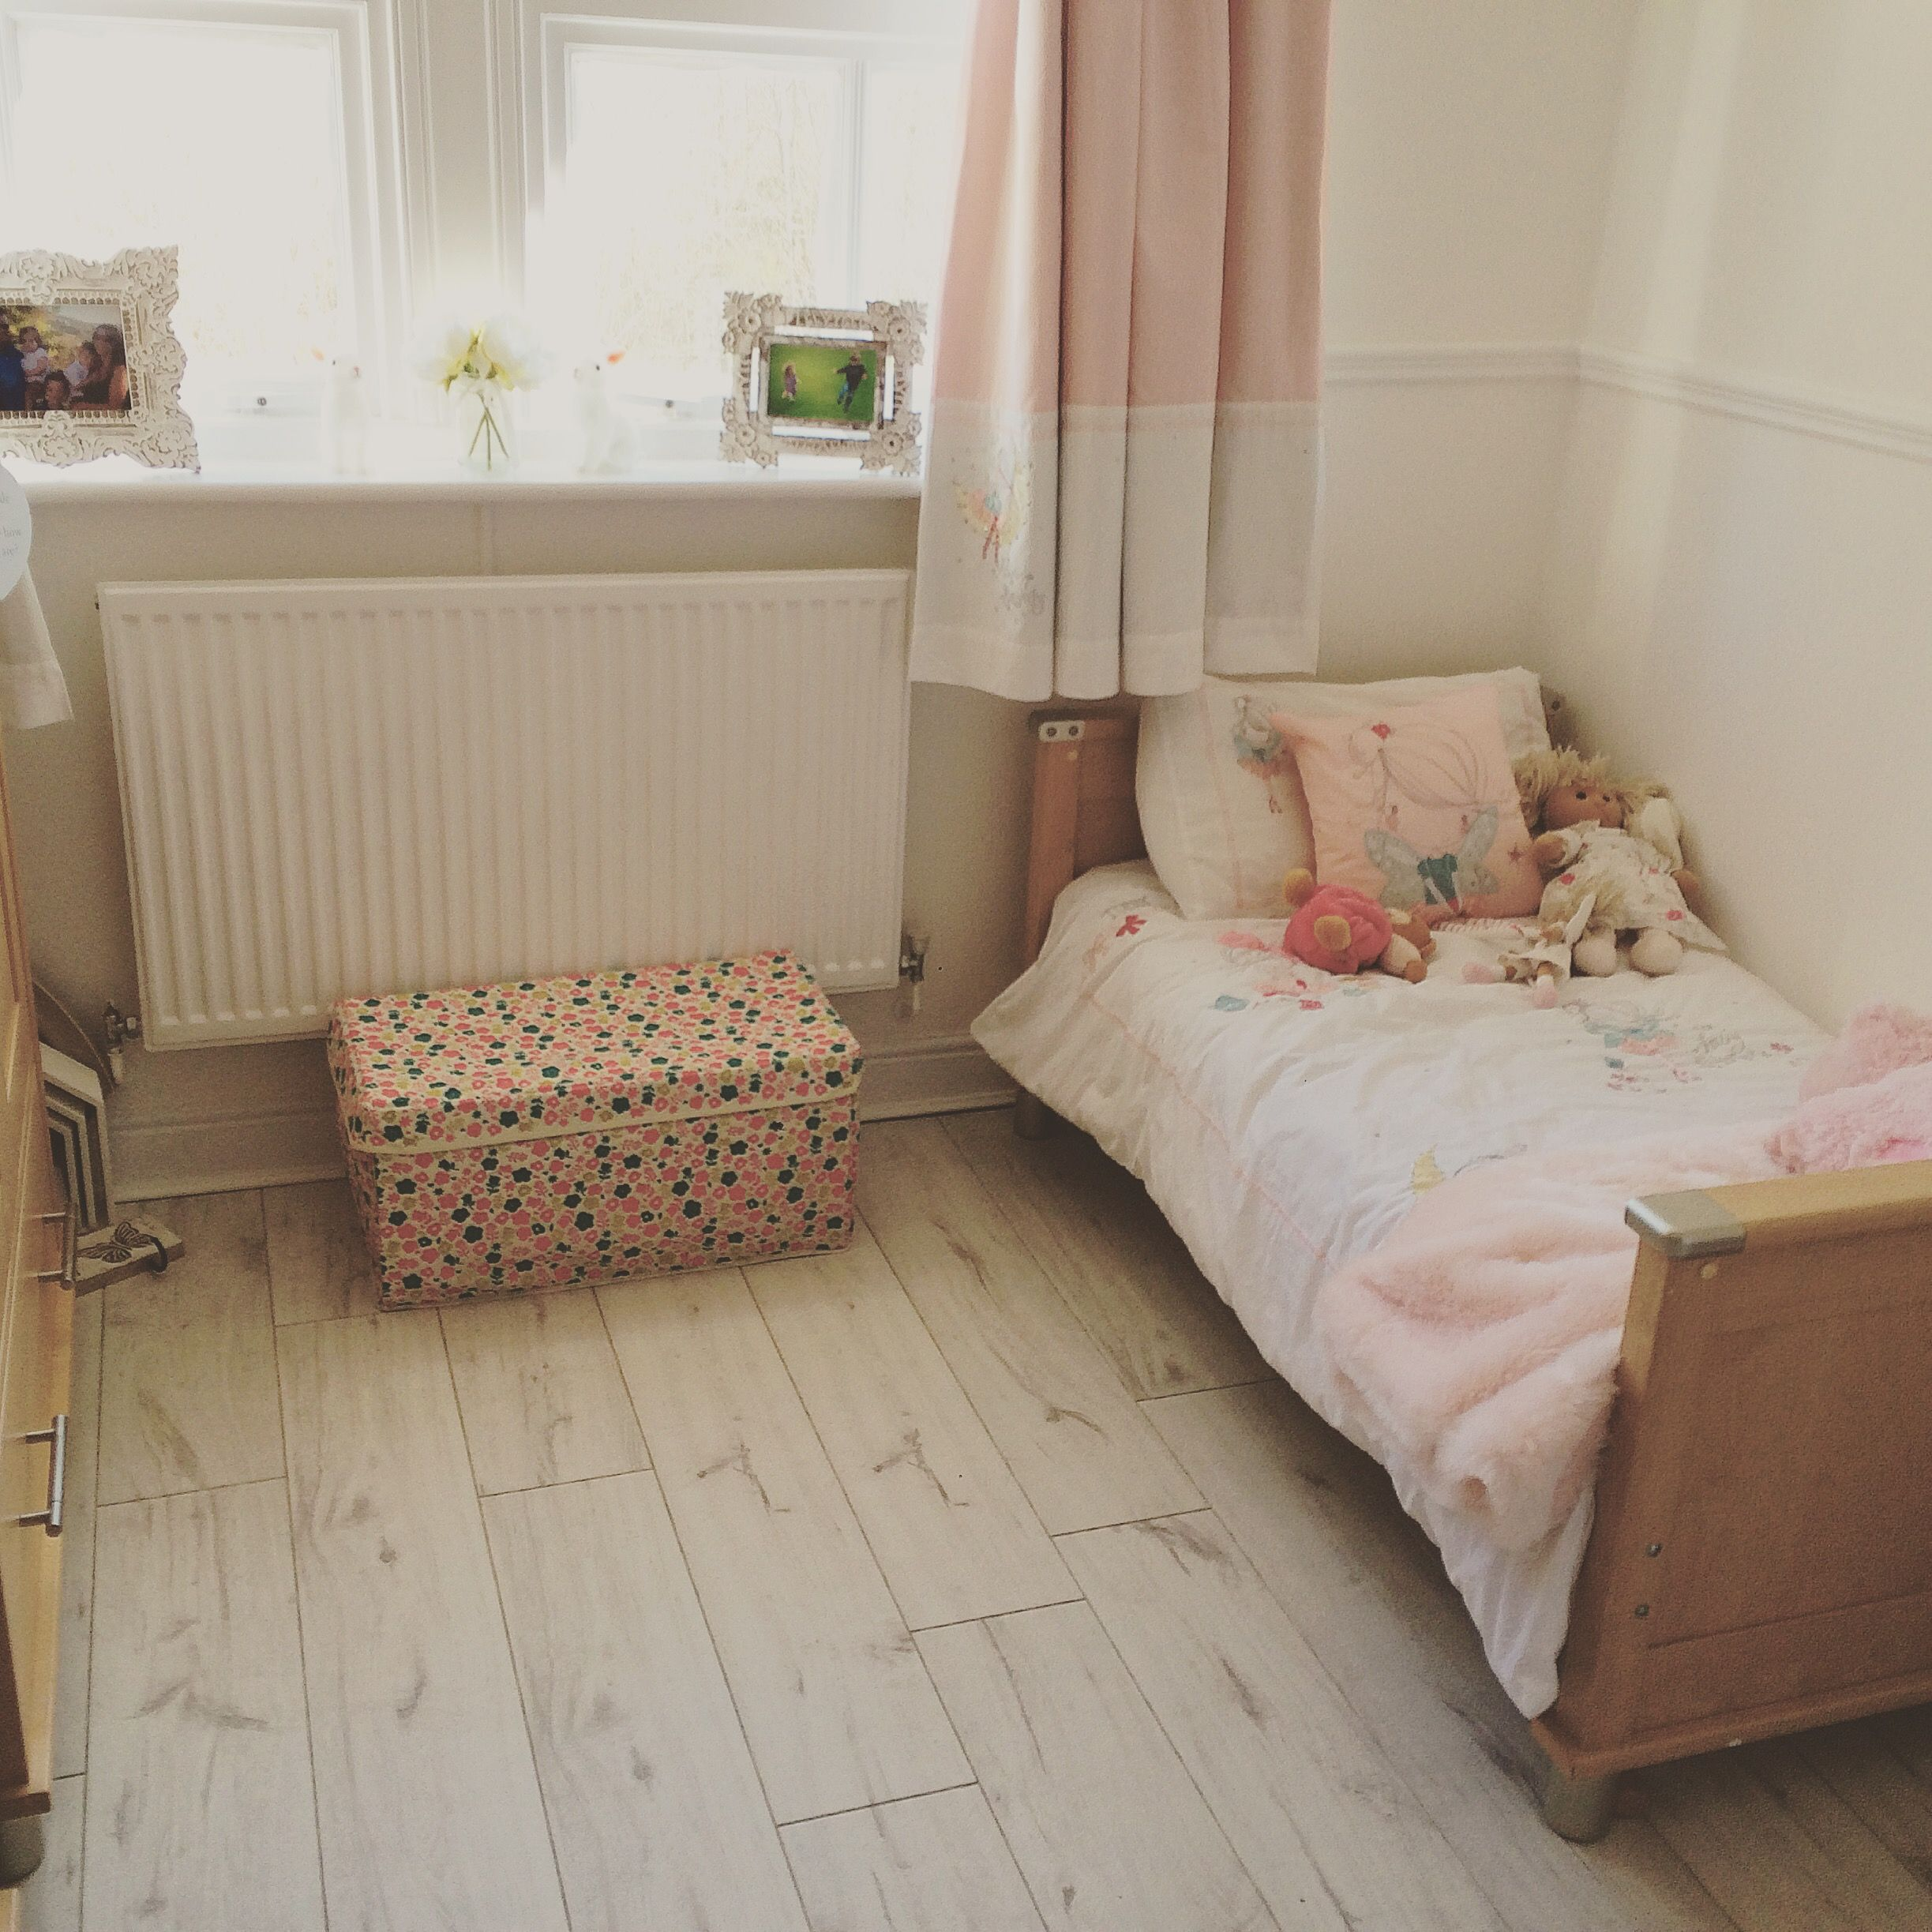 Fitting white laminate flooring in a child's bedroom